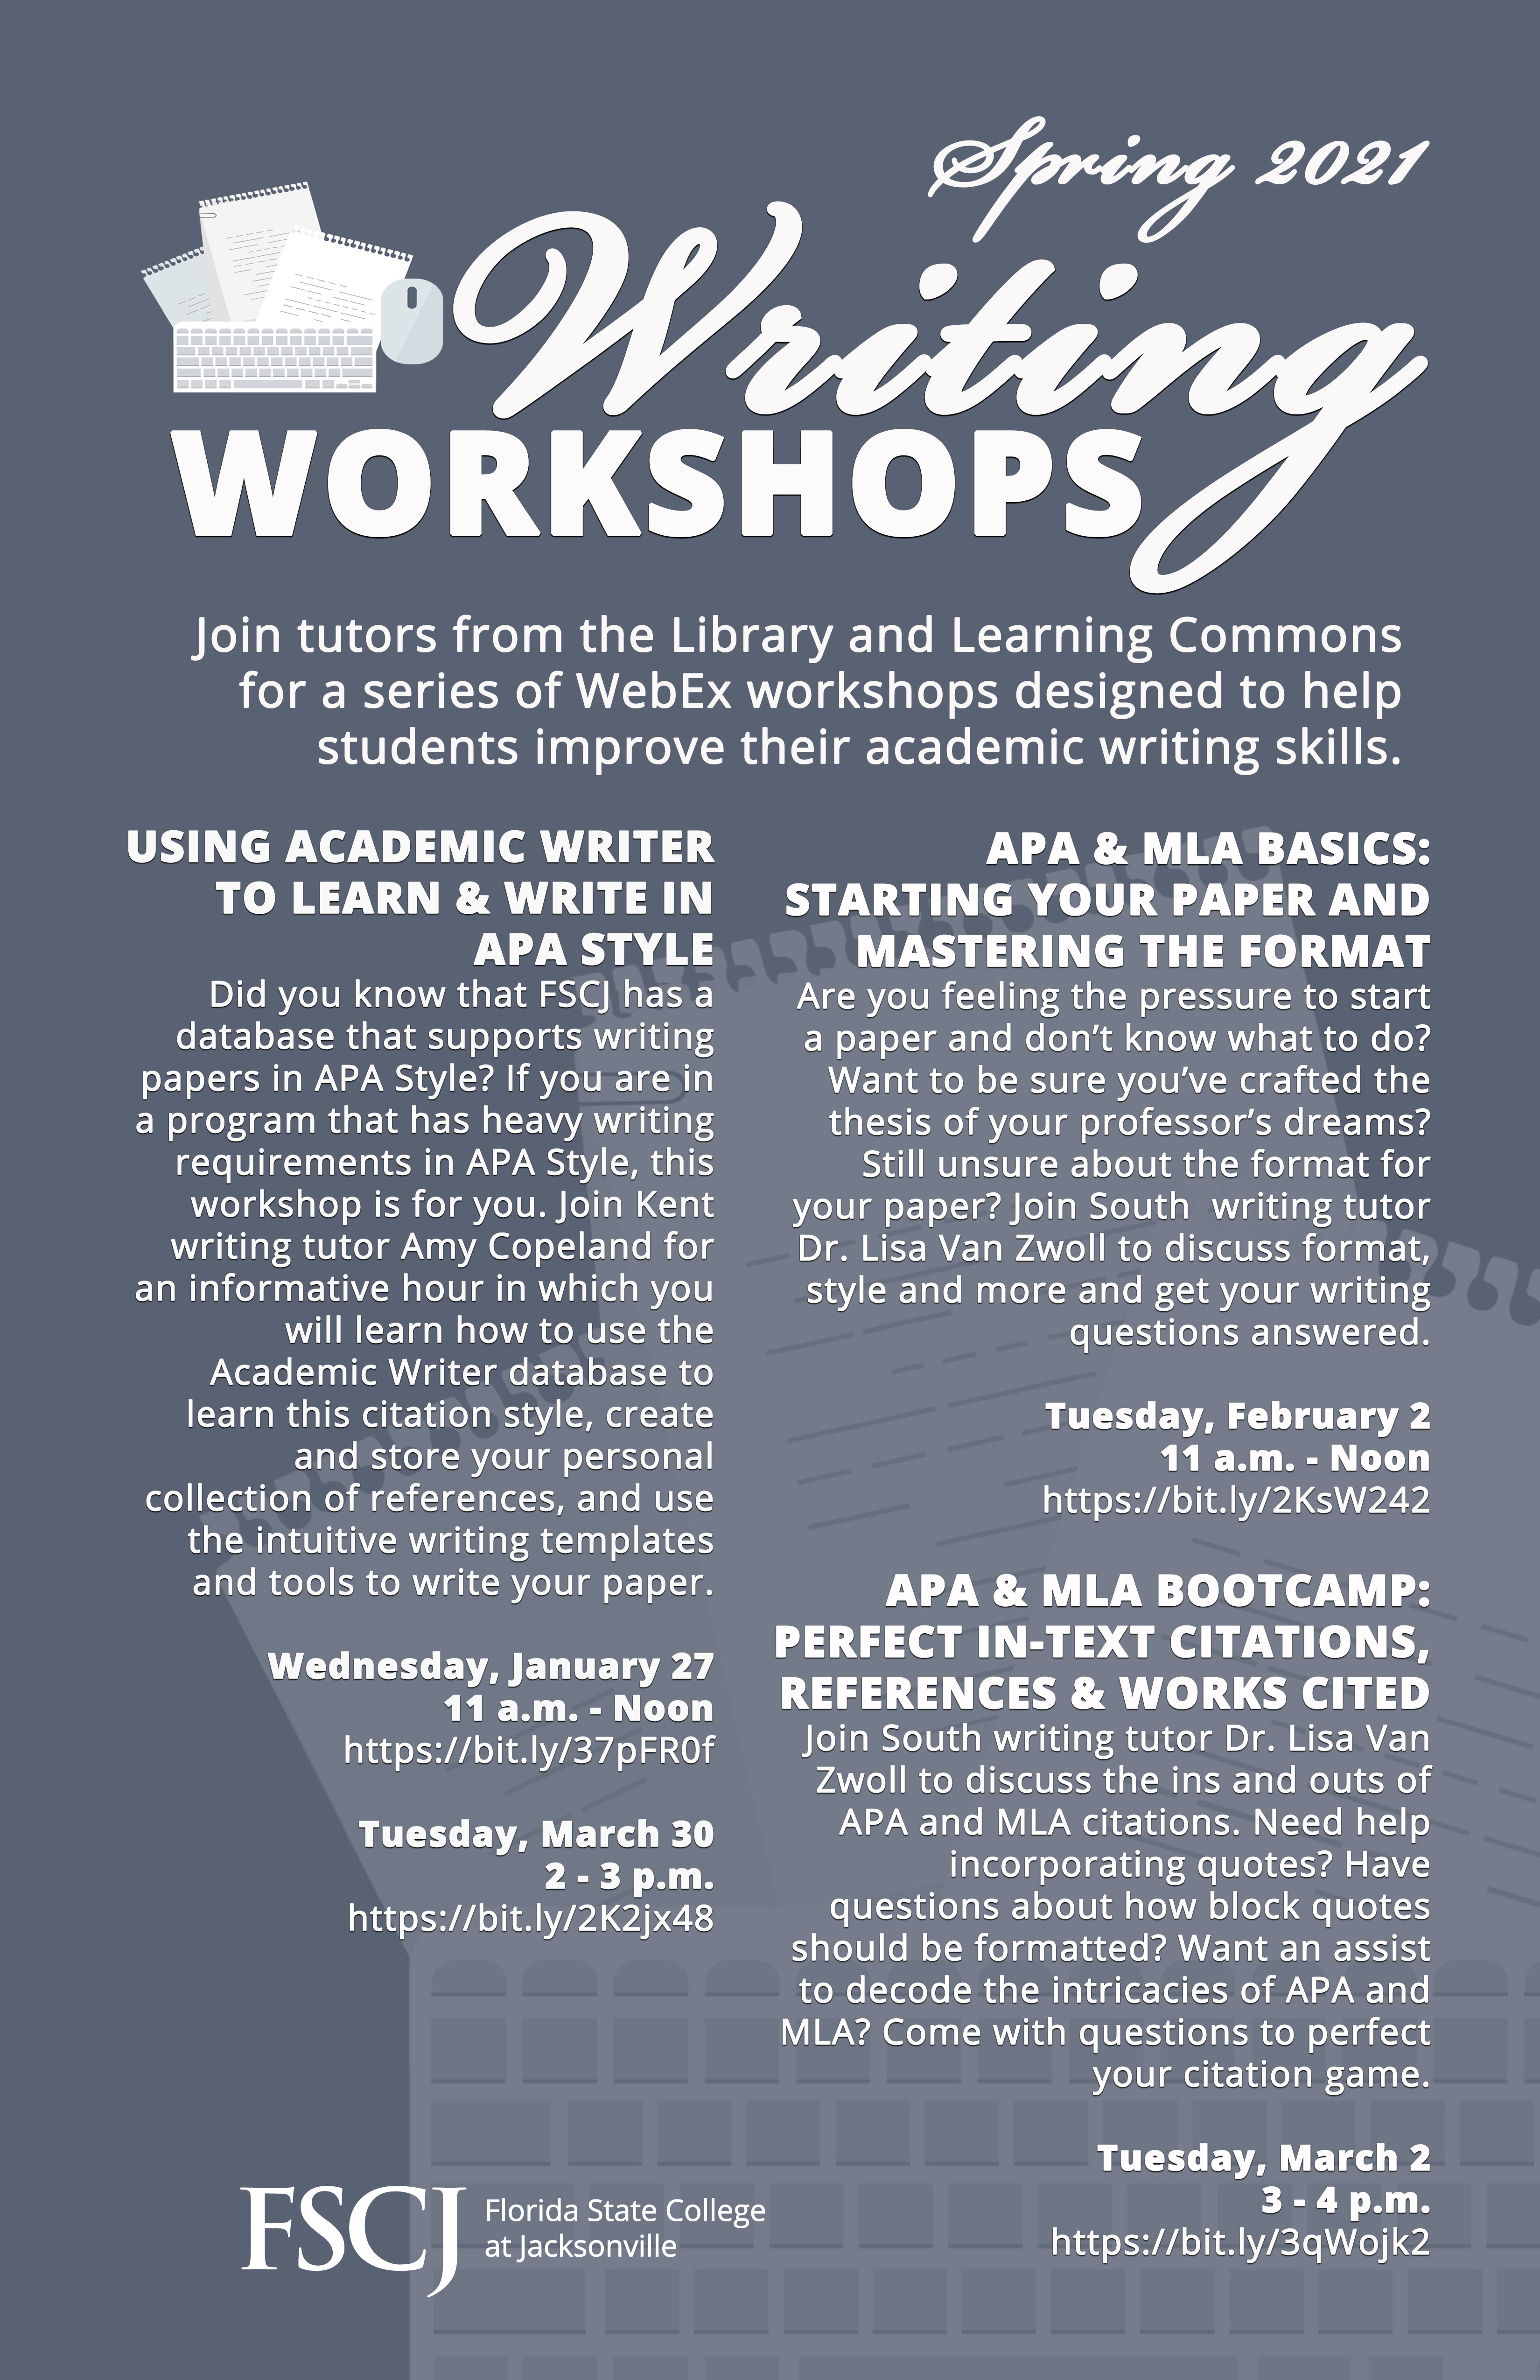 WRITING WORKSHOPS: Using Academic Writer to Learn and Write in APA Style